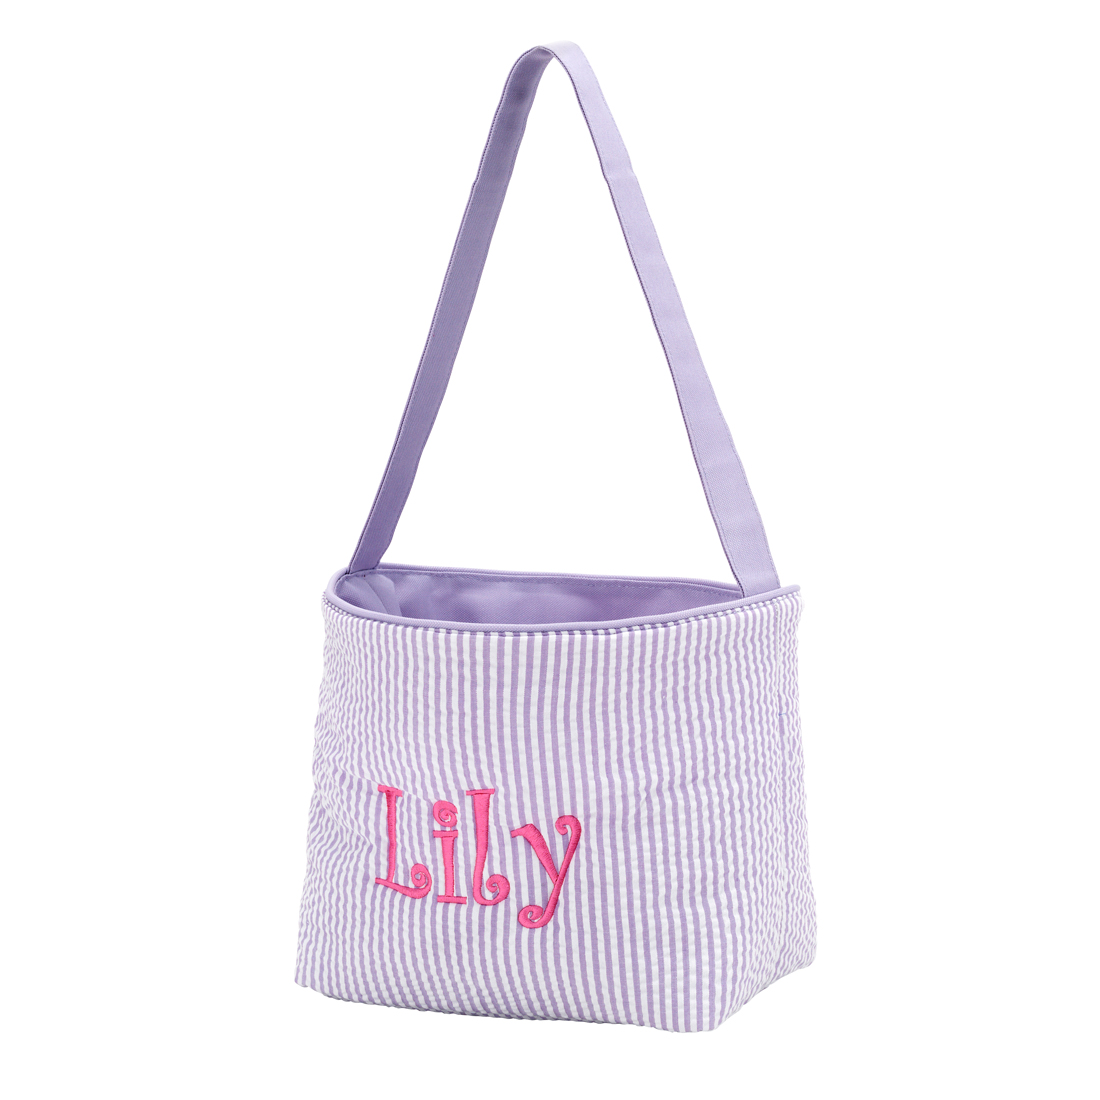 Monogram Shown: Party Time Font/Hot Pink Thread